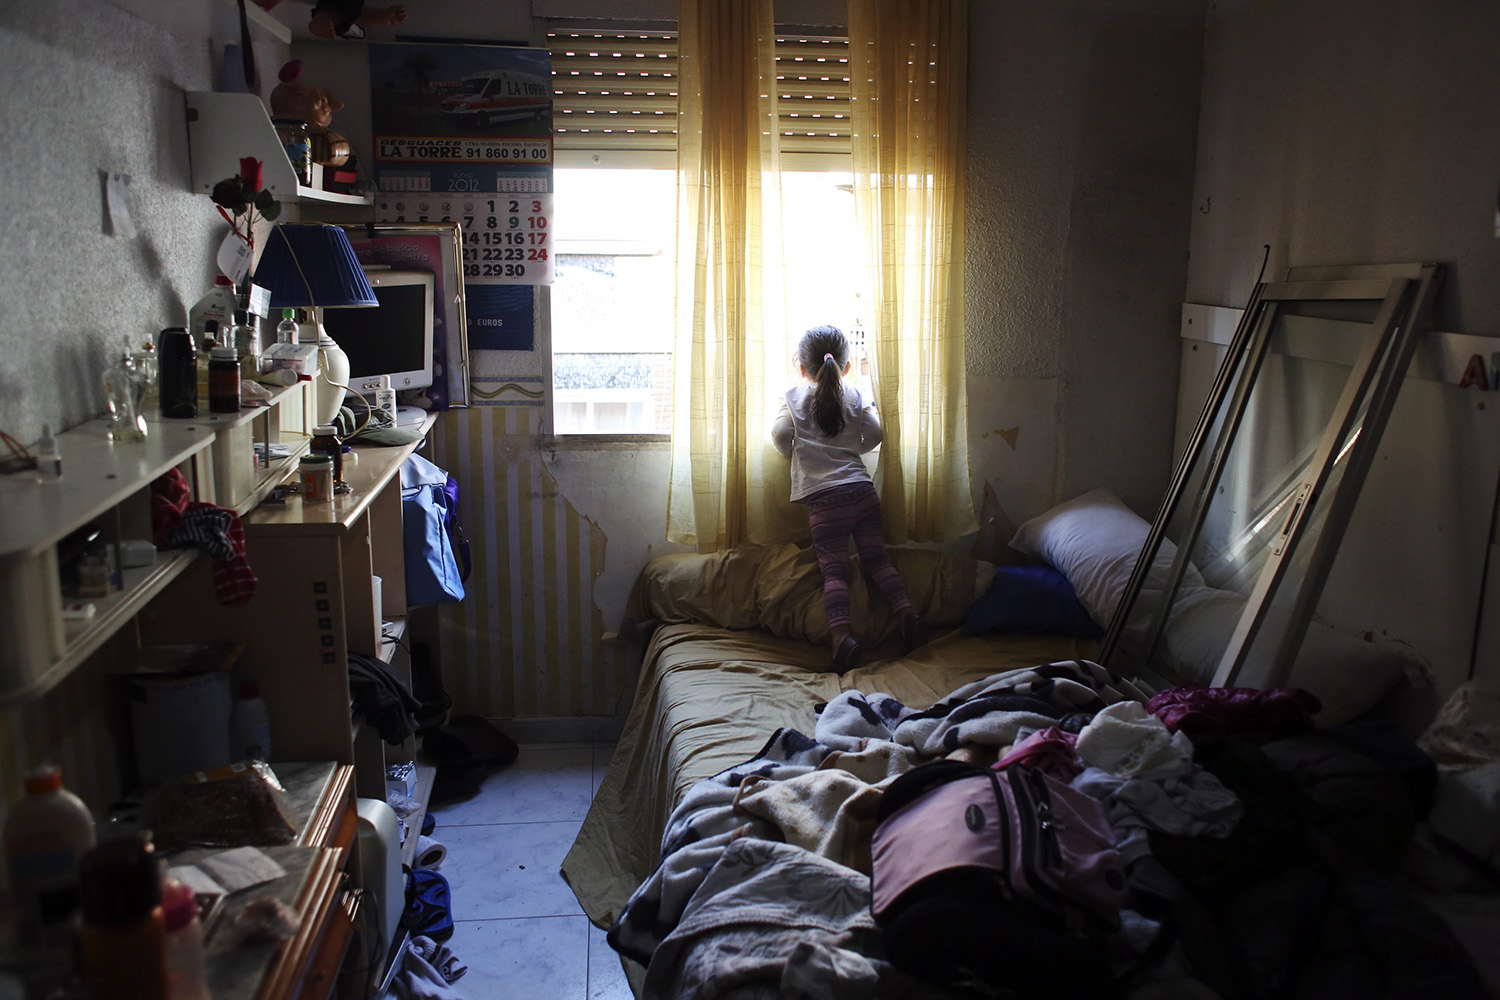 April 11, 2014. Dayana Chasi Saavedra, 3, looks through the window after news that their eviction was not going to be carried out, in Madrid, Spain.